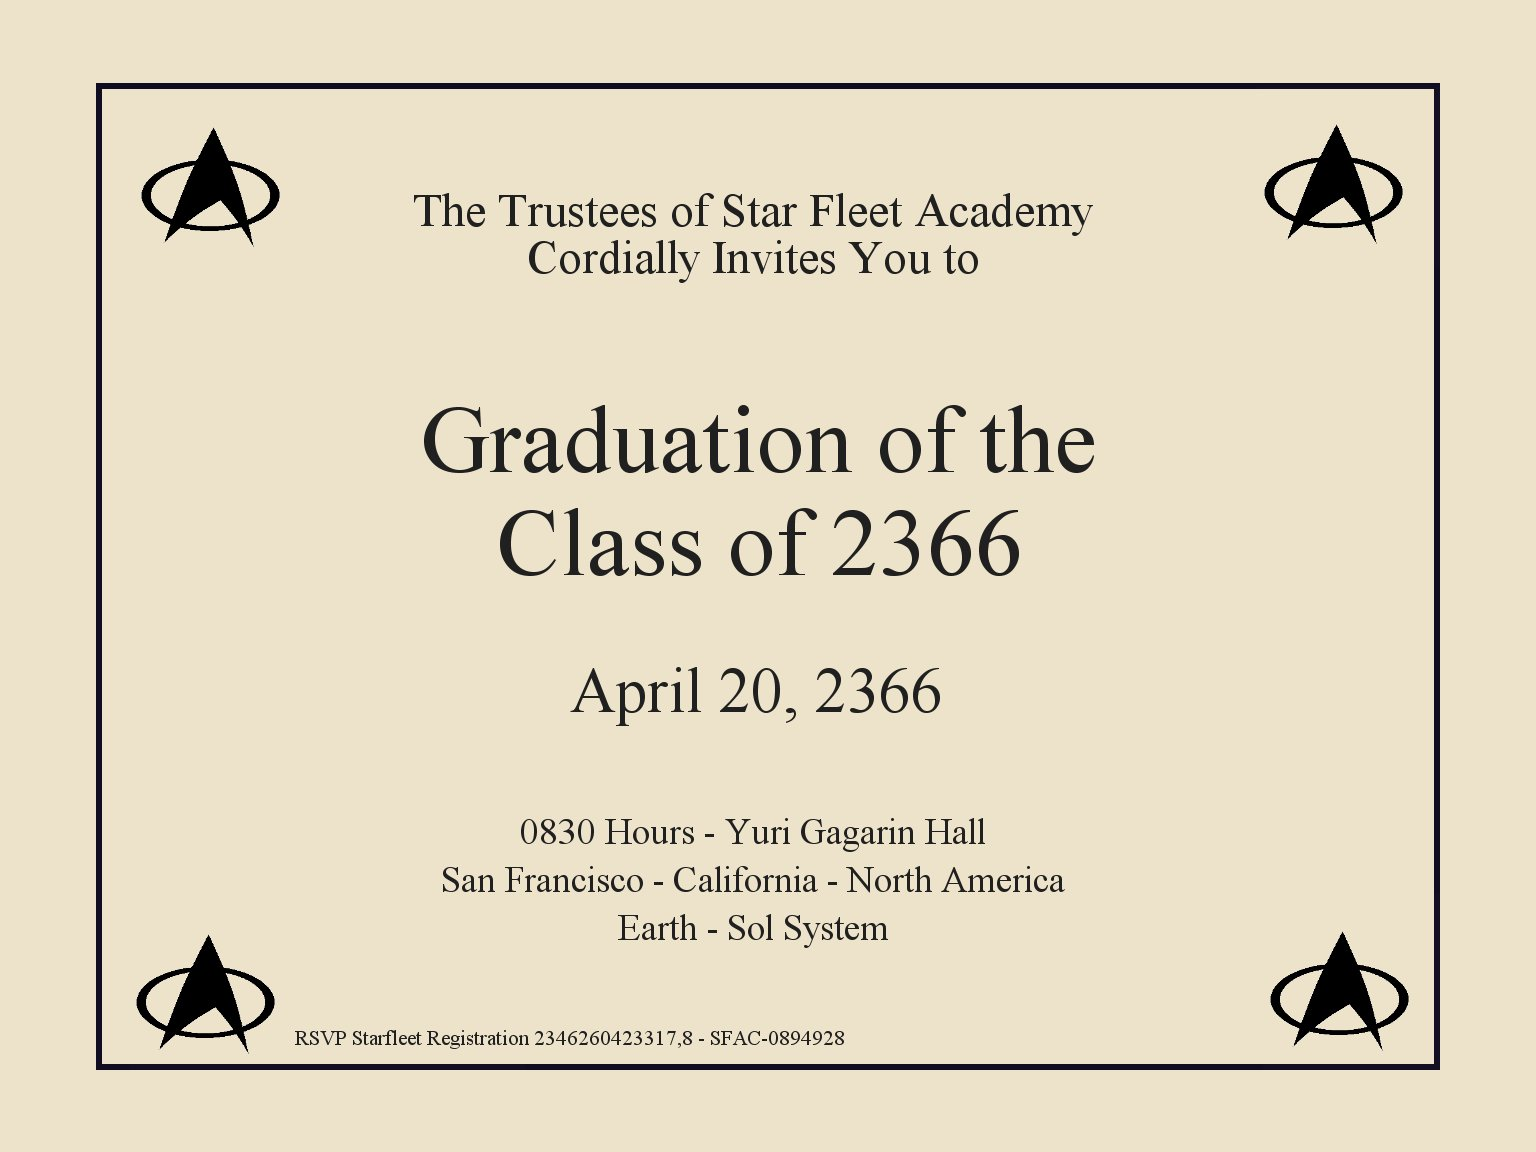 Academy Graduation Certificate by Euderion on DeviantArt